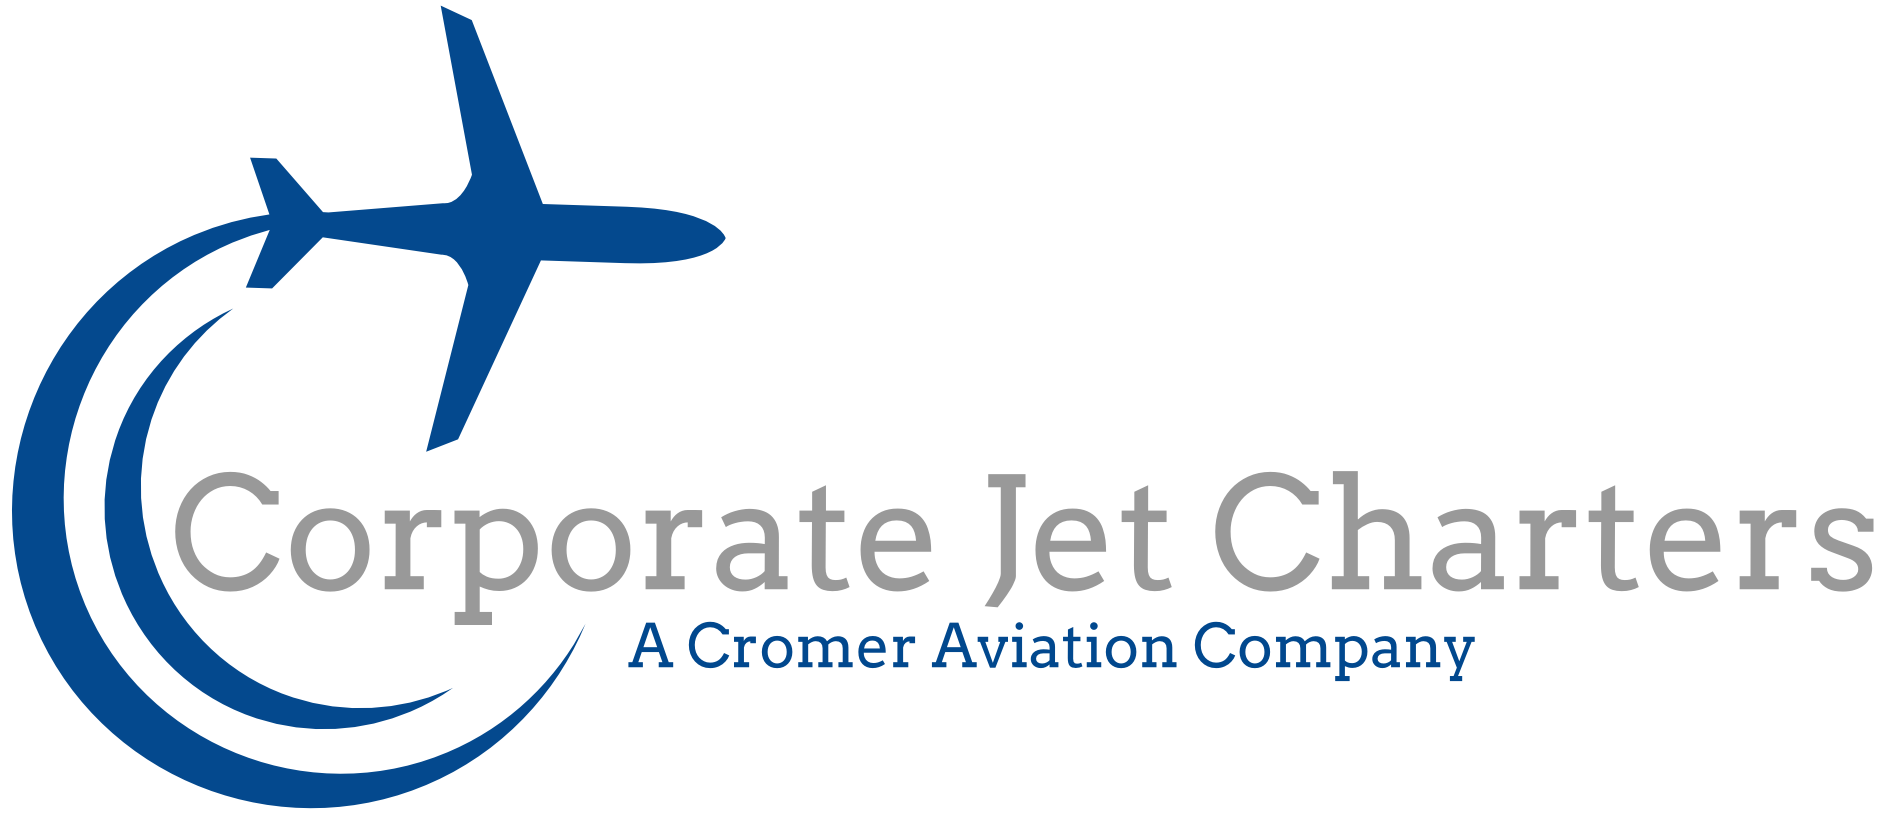 Jet clipart air transportation. Aircraft charters management and